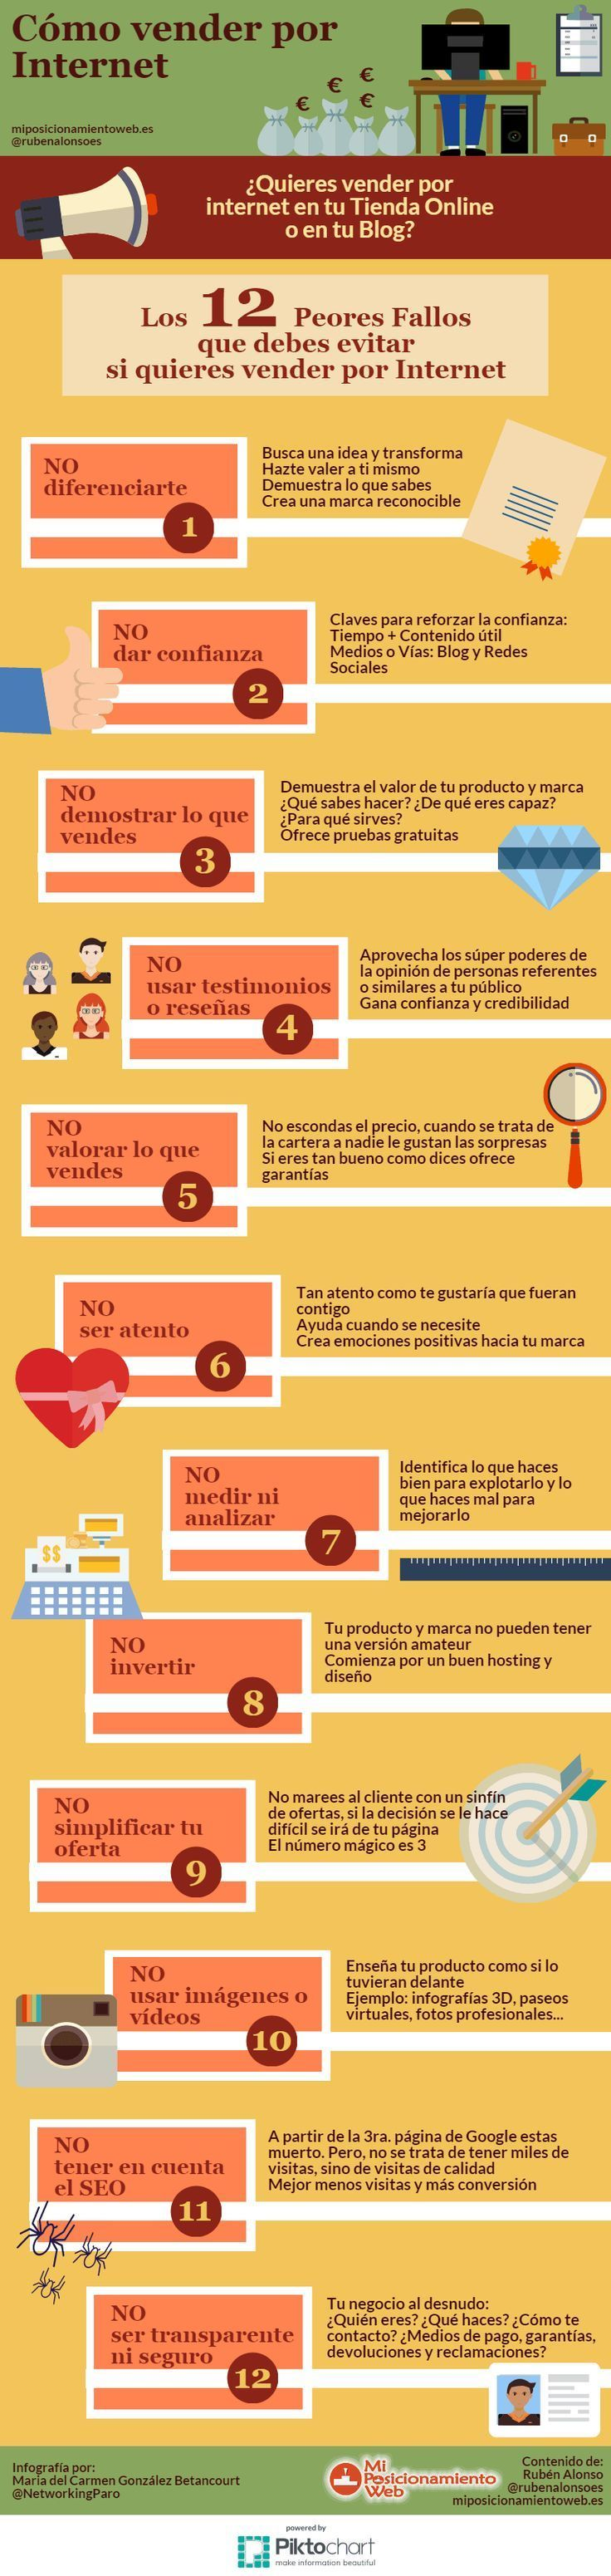 Cómo vender por Internet: los 12 peores fallos que puedes tener #infografia #infographic #eCommerce - Love a good success story? Learn how I went from zero to 1 million in sales in 5 months with an e-commerce store.